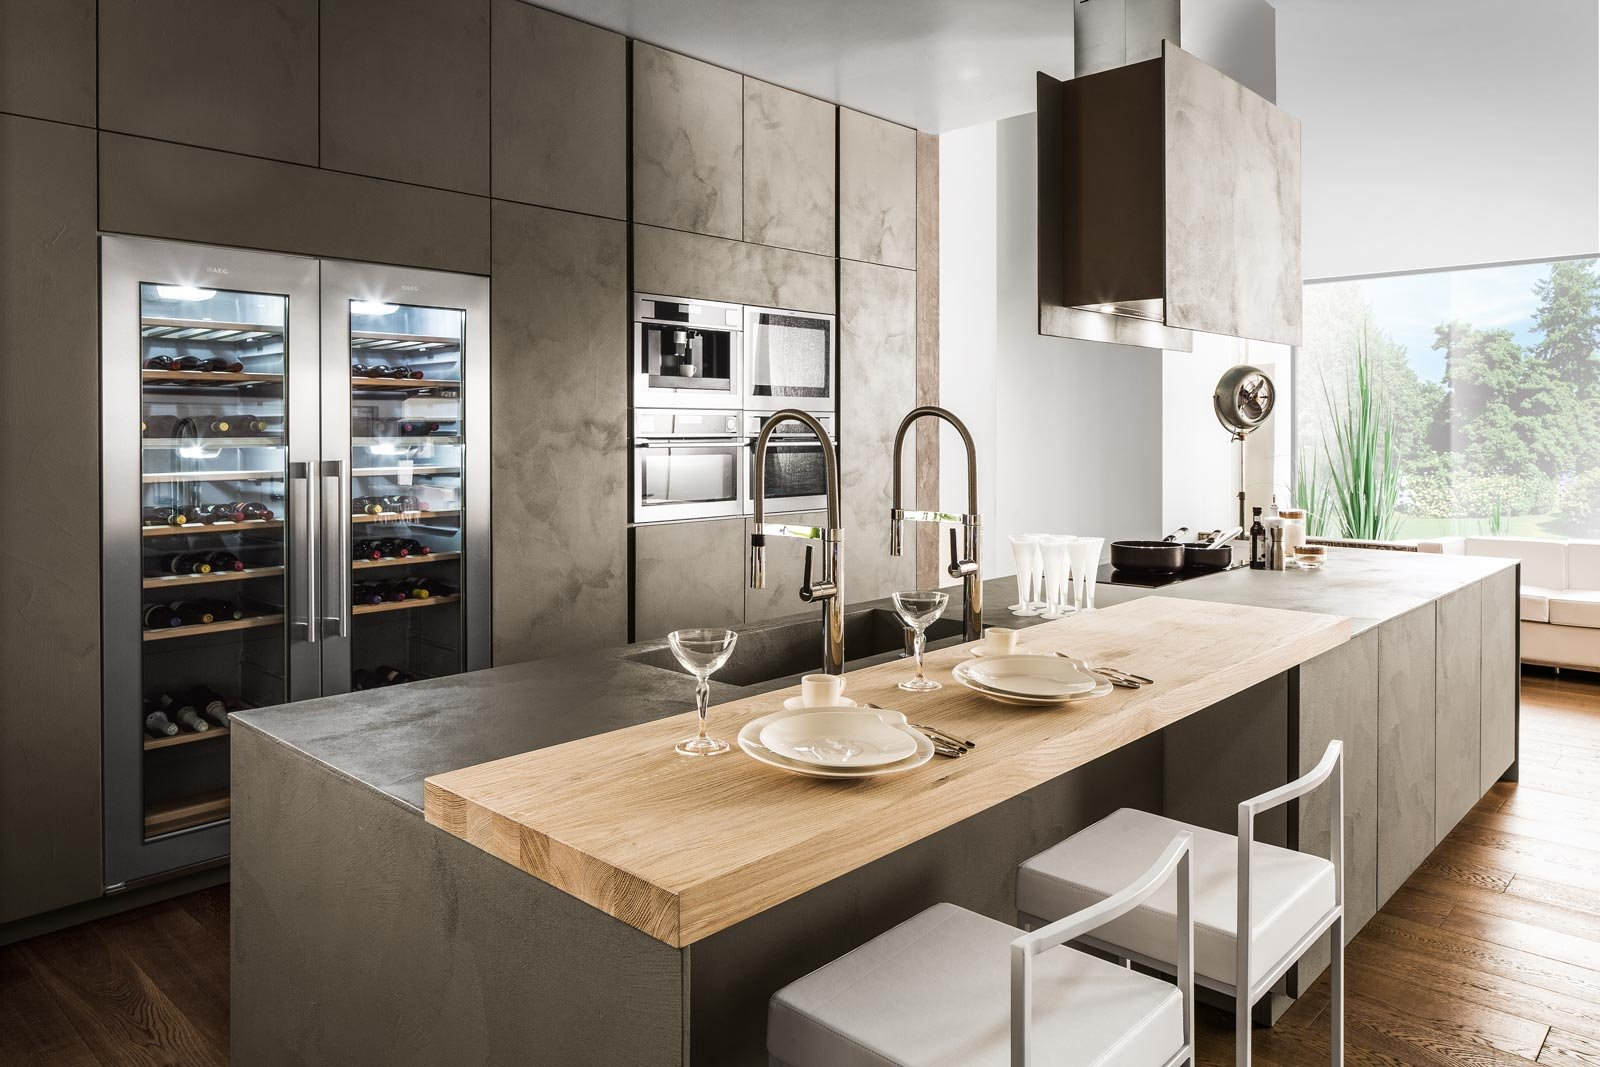 Eurocucina 2016 superfici soft touch per le nuove cucine for Cucine arrex